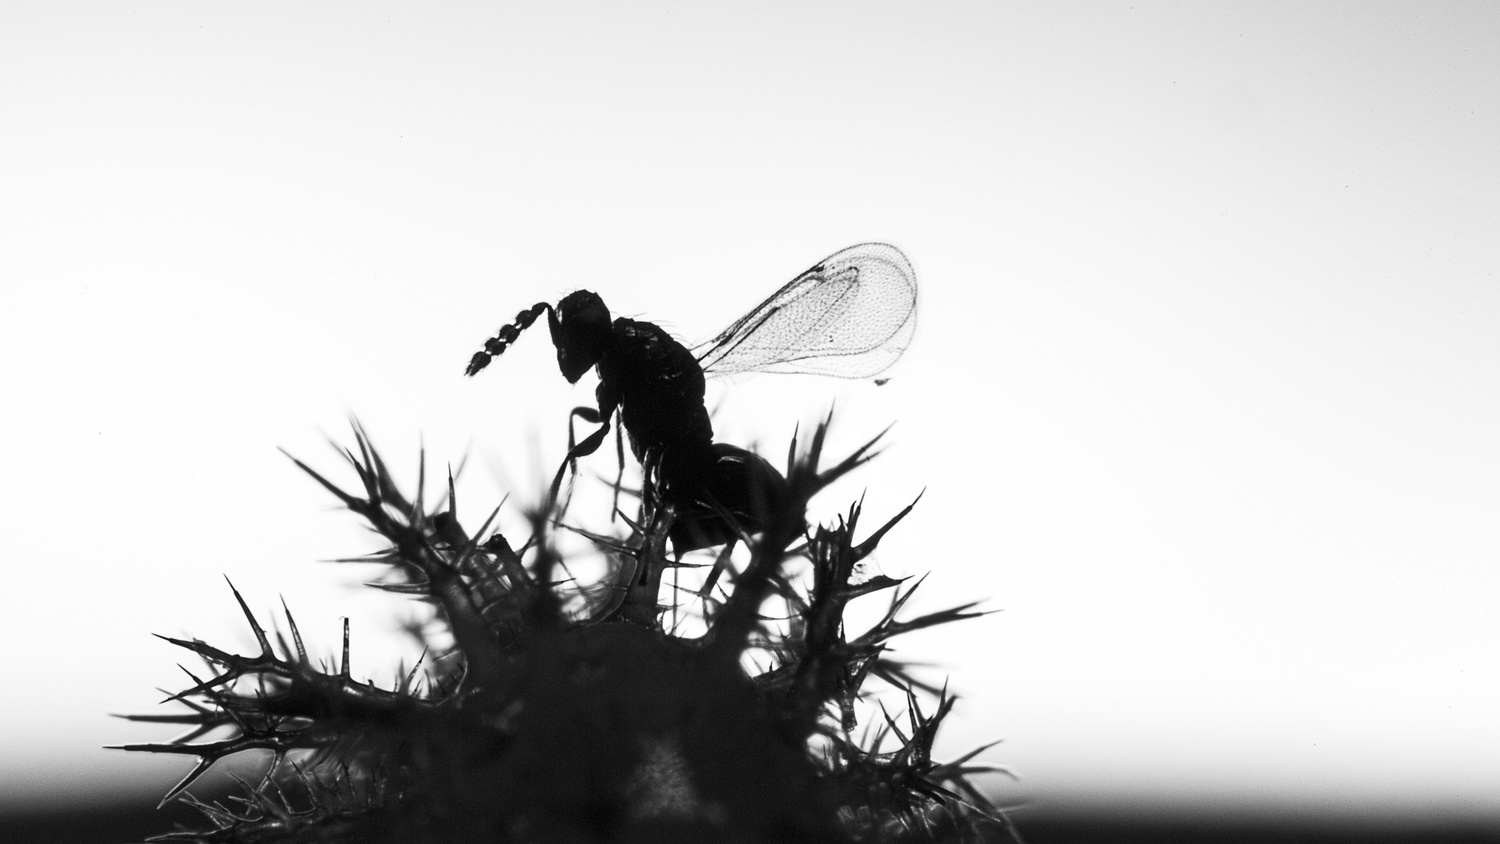 Parasitic wasp and host by Hannier Pulido